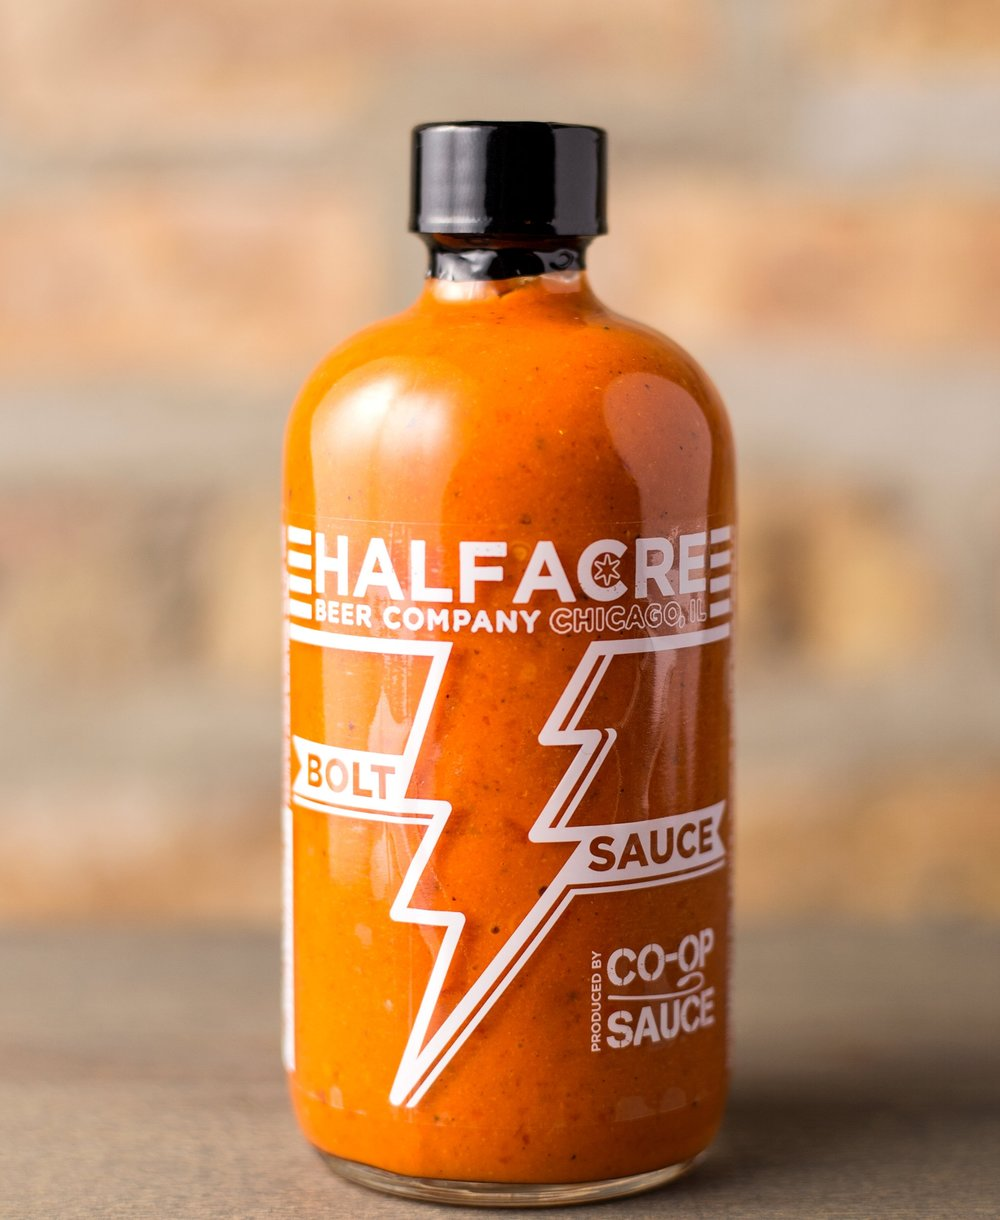 BOLT SAUCE - This beauty is also a beast, with hints of cumin crafted specifically for our friends at Half Acre Beer Company. You really can put this burrito zinger on all the things.